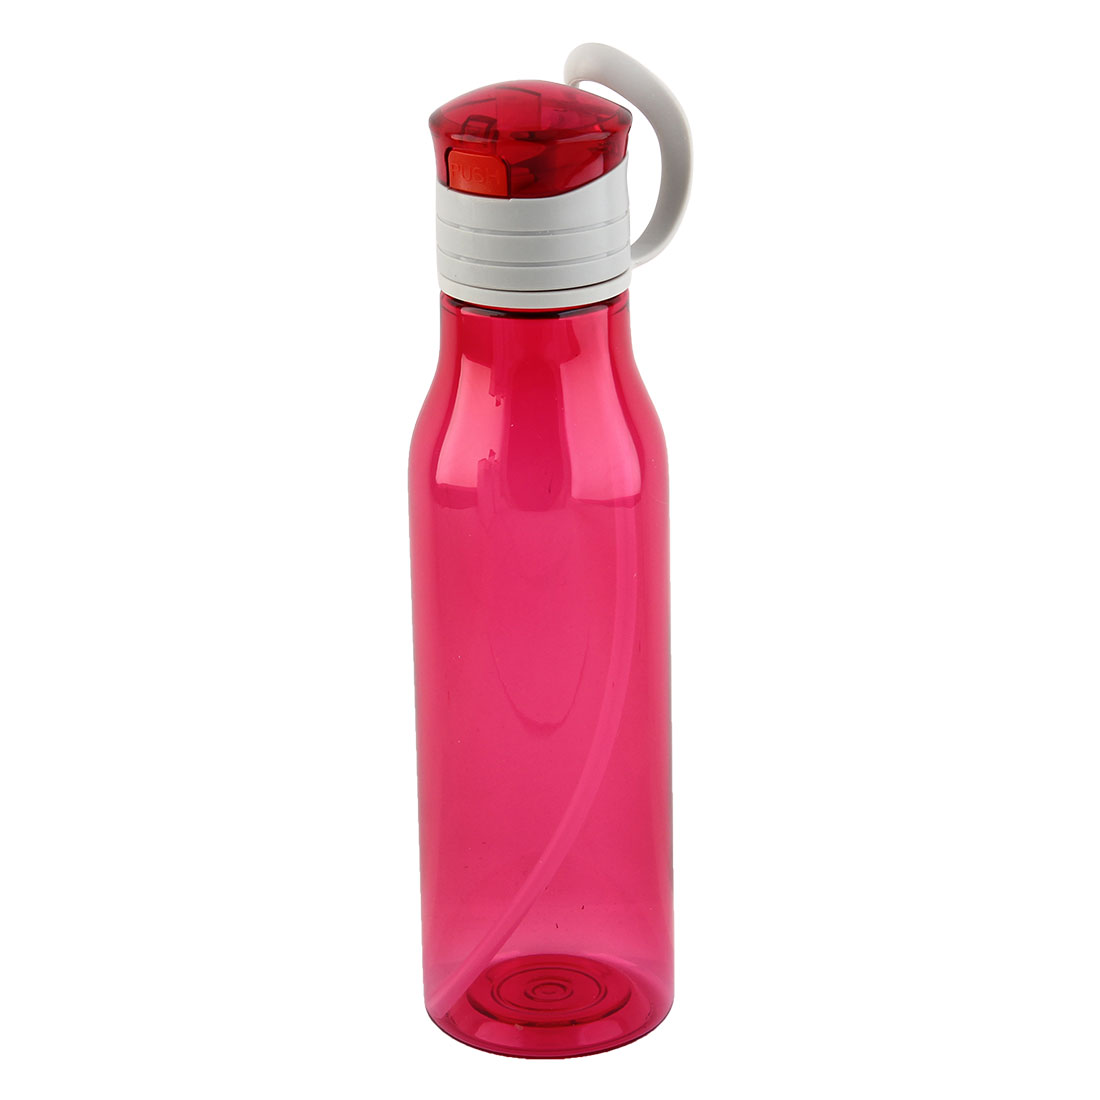 Outdoor Sports Plastic Straw Water Bottle Portable Fruit Juice Mug Biking Canteen Hiking Kettle Fuchsia 570ml